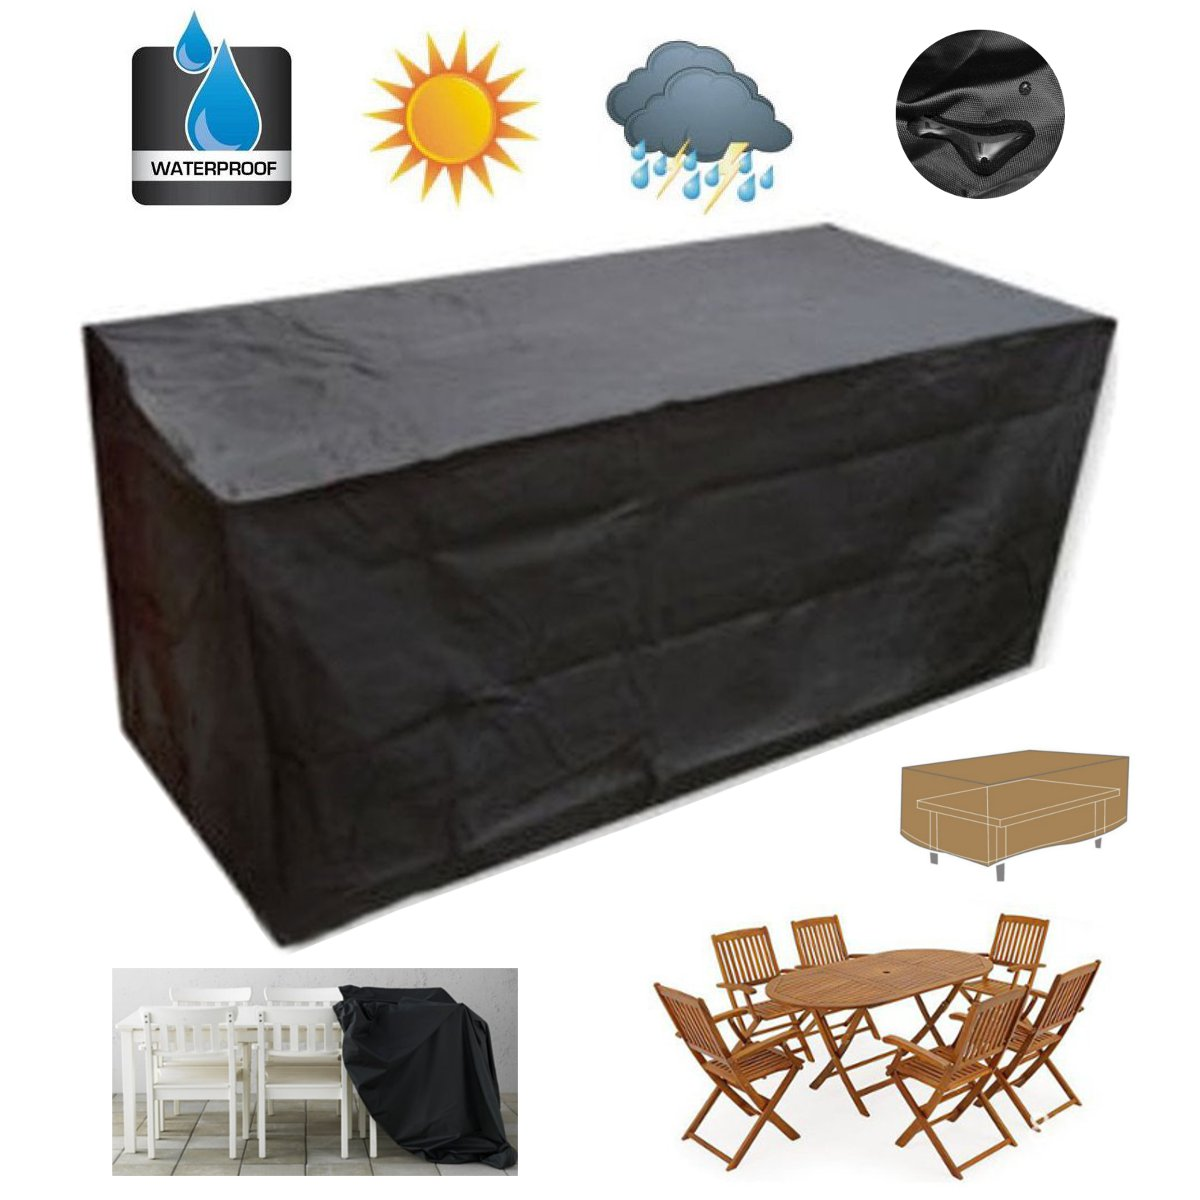 180*120*74cm Garden Patio Chair Outdoor Furniture Sofa Cover Waterproof  Polyester + PVC Coated Table Desk Black Silver Color In Sofa Cover From  Home ...